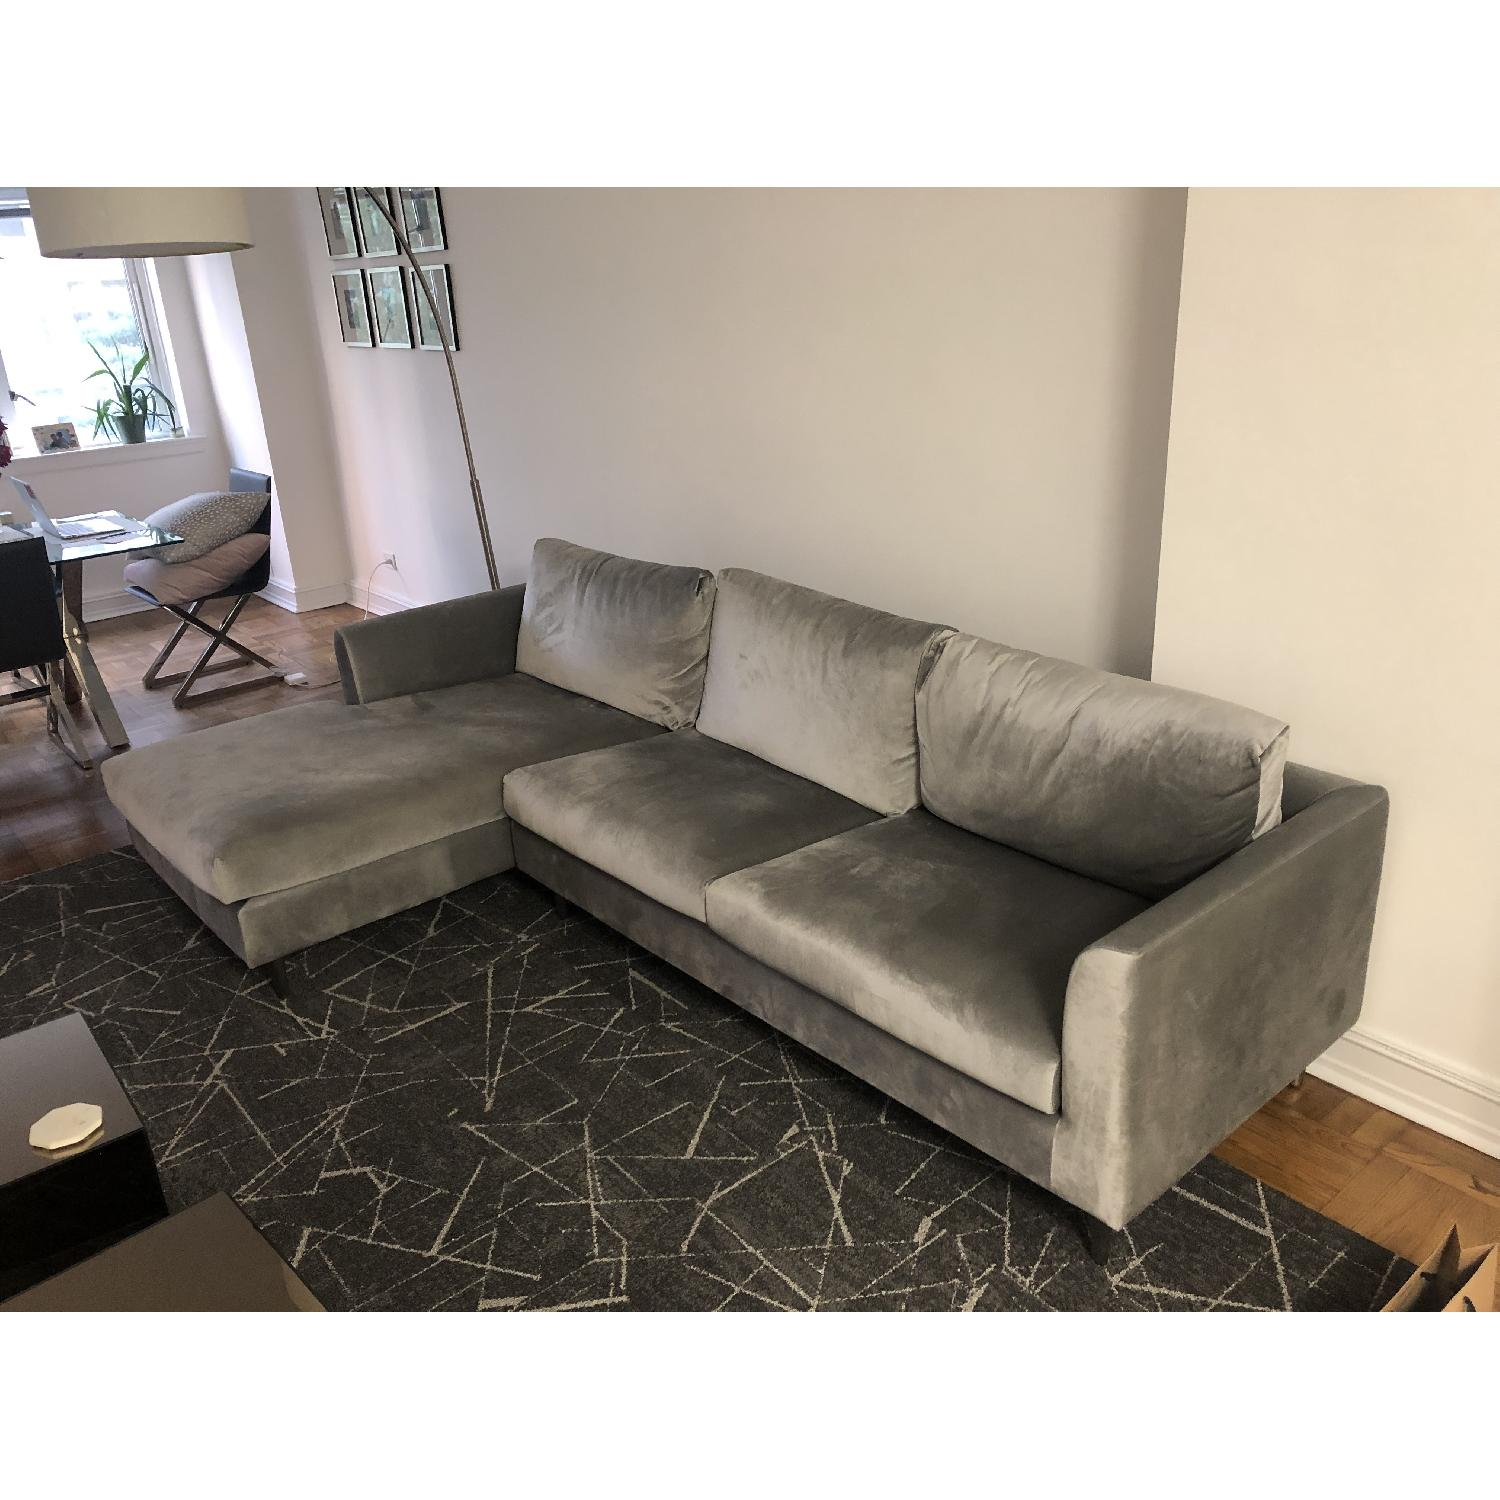 Interior Define Owens Sectional Sofa w/ Left Chaise - image-3